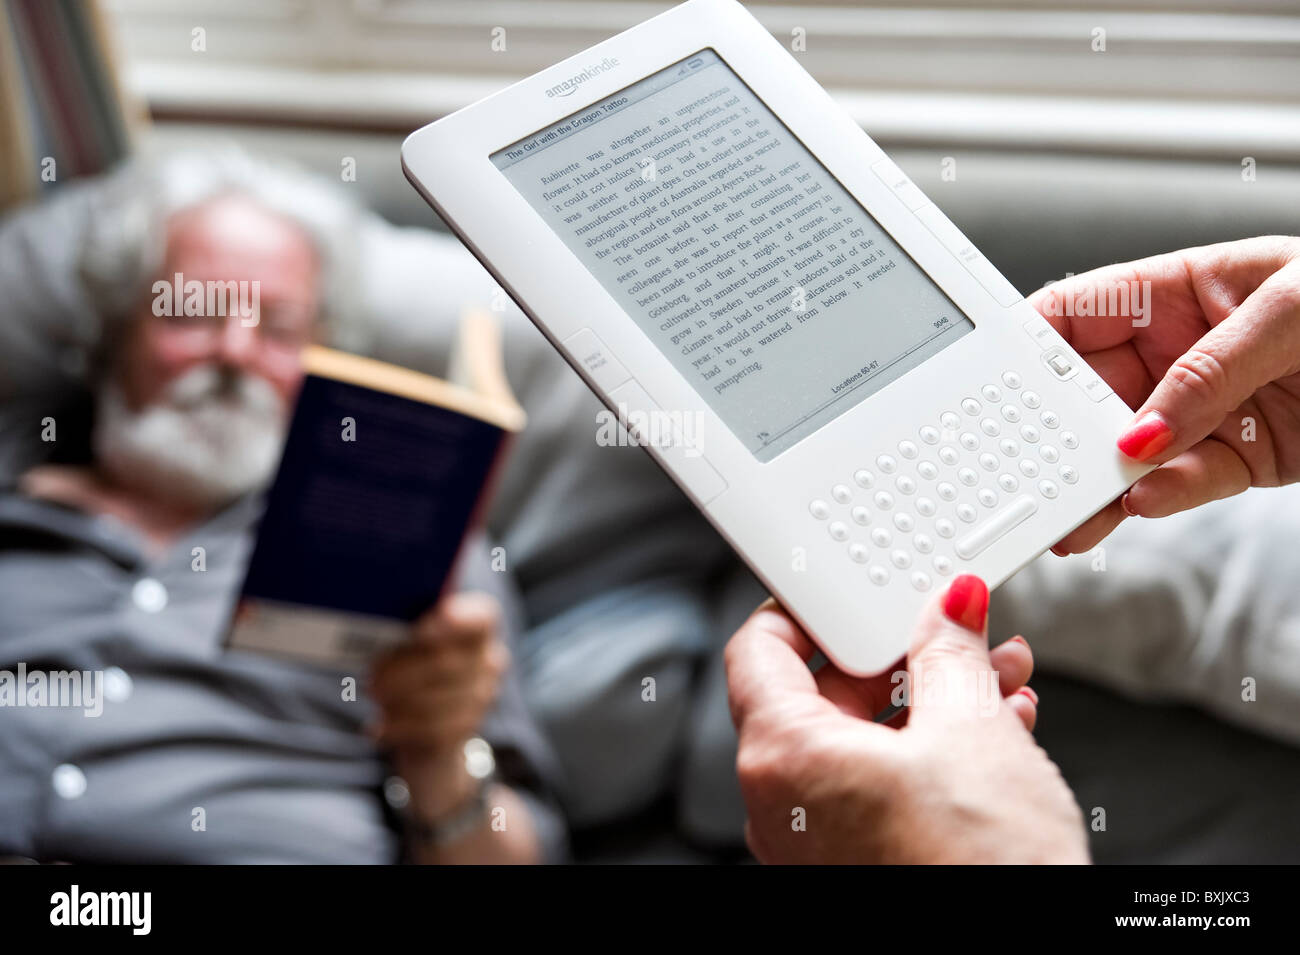 Lecture du livre sur Amazon Kindle Photo Stock